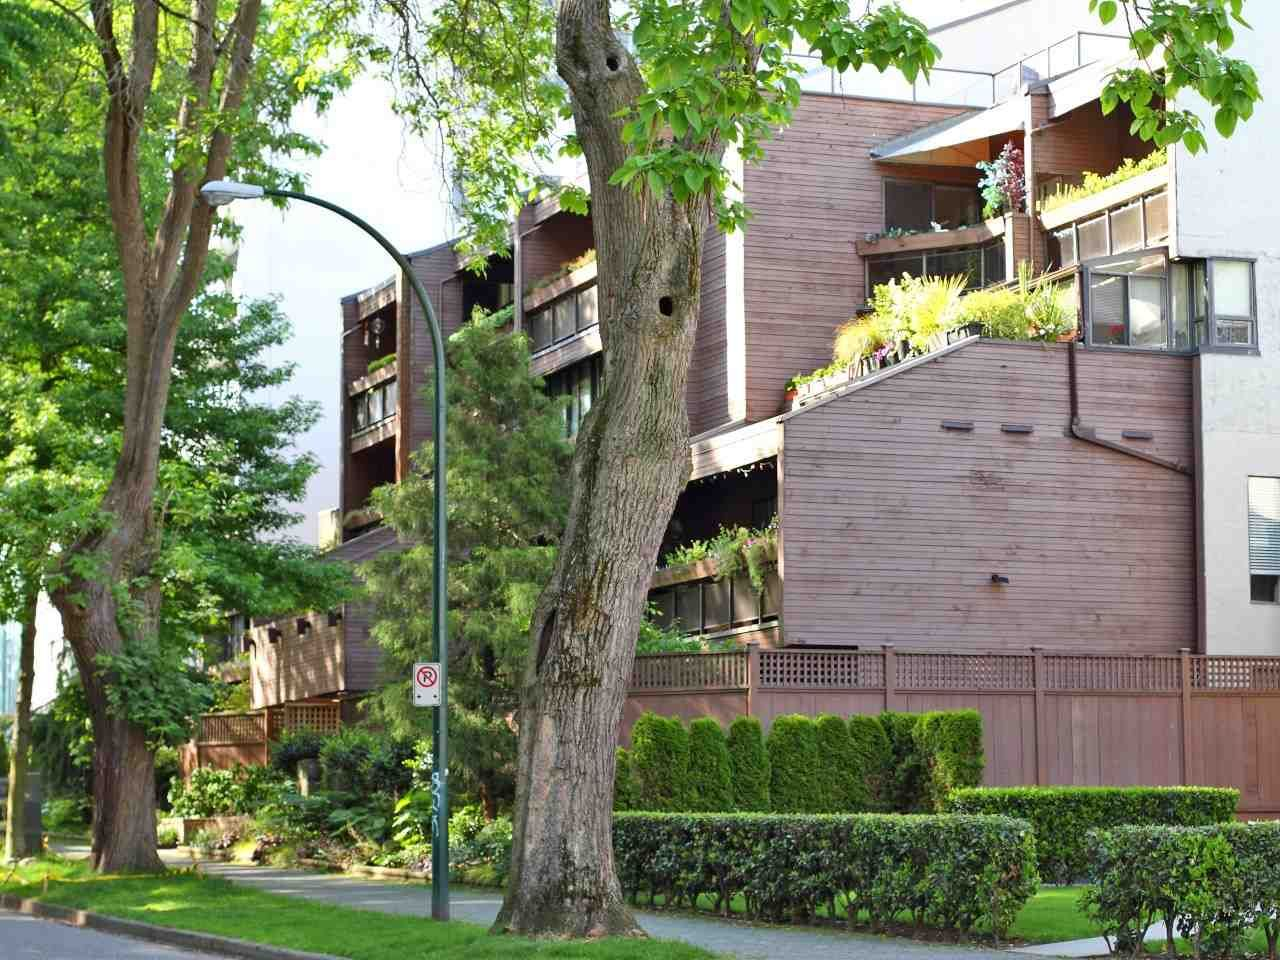 """Main Photo: 209 1855 NELSON Street in Vancouver: West End VW Condo for sale in """"The WestPark"""" (Vancouver West)  : MLS®# R2462259"""